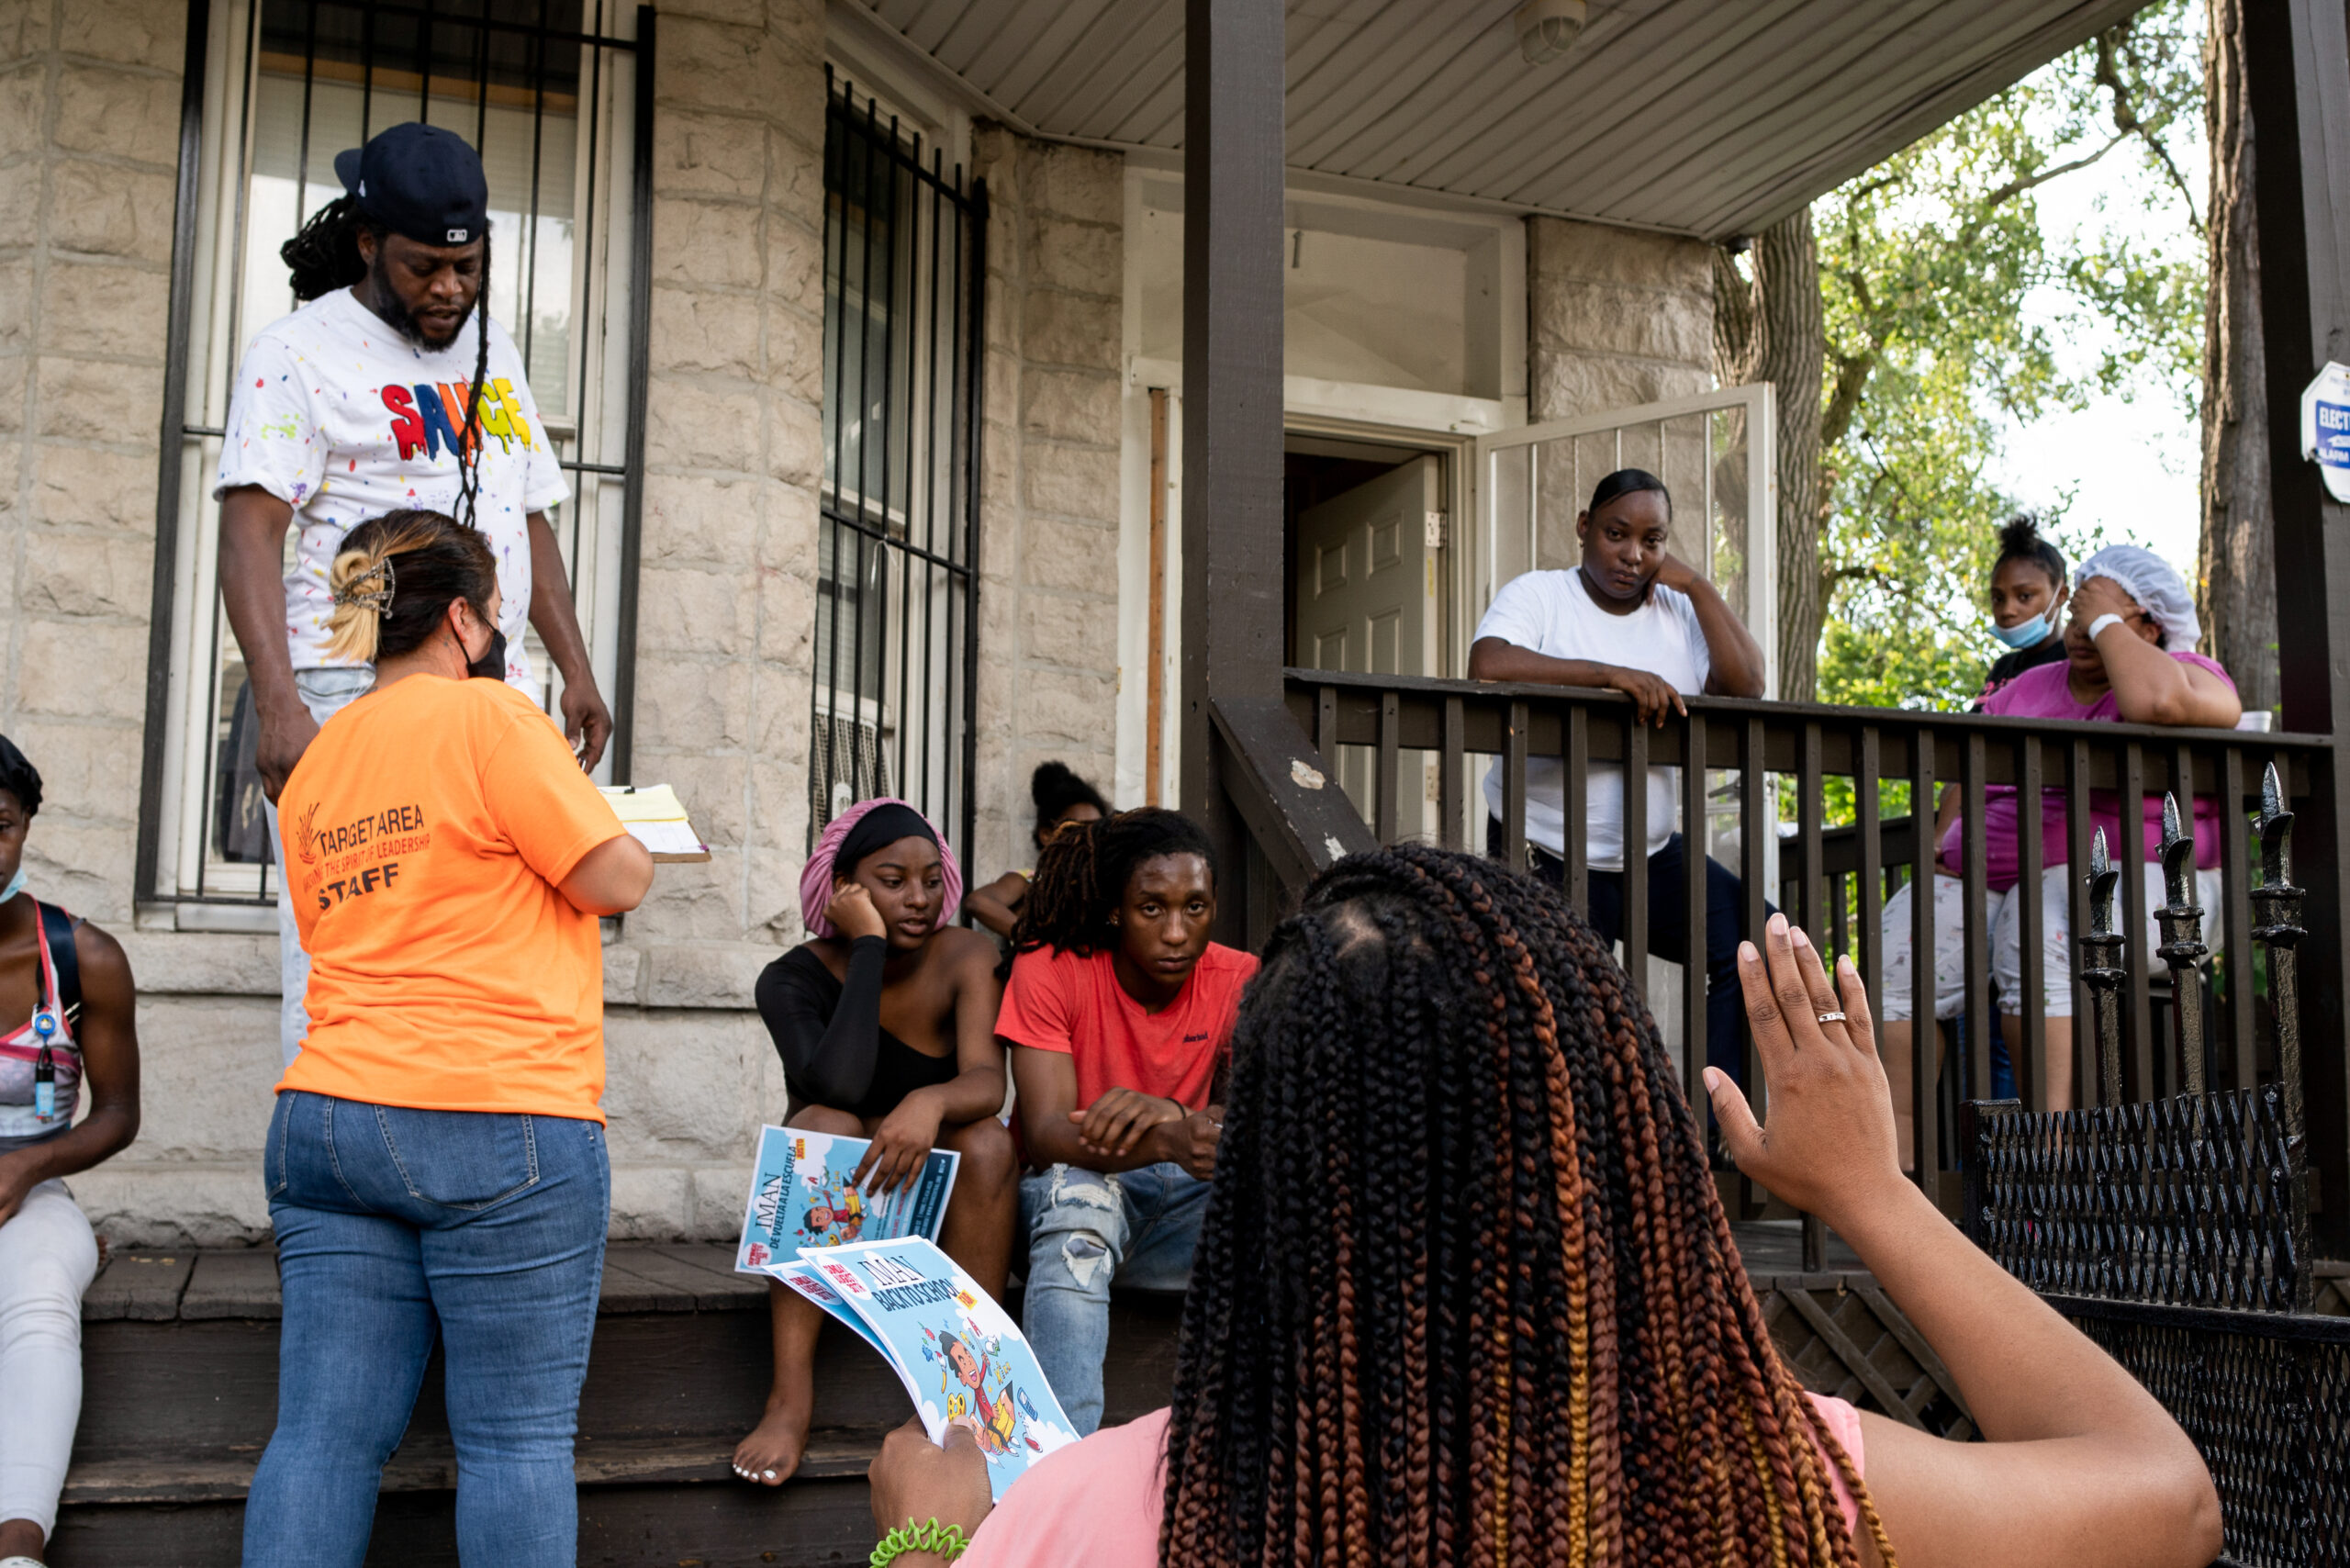 Pastor Tracey gestures to a group of forlorn people standing on the front porch of their home.